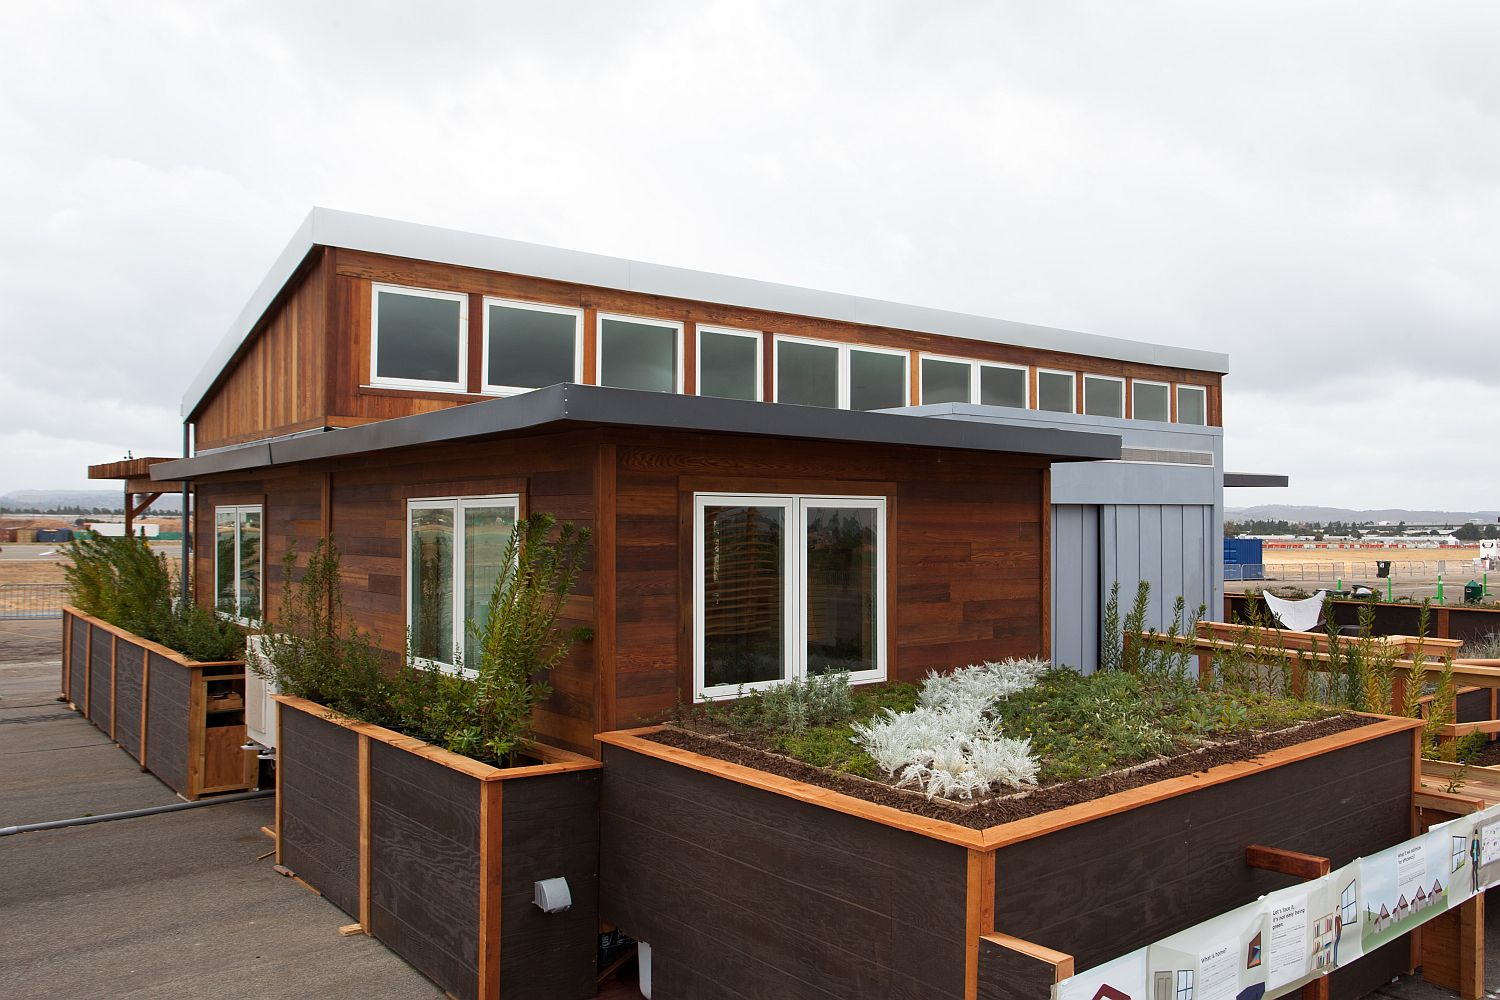 Solar decathlon 2013 start home small house bliss for Small solar home plans